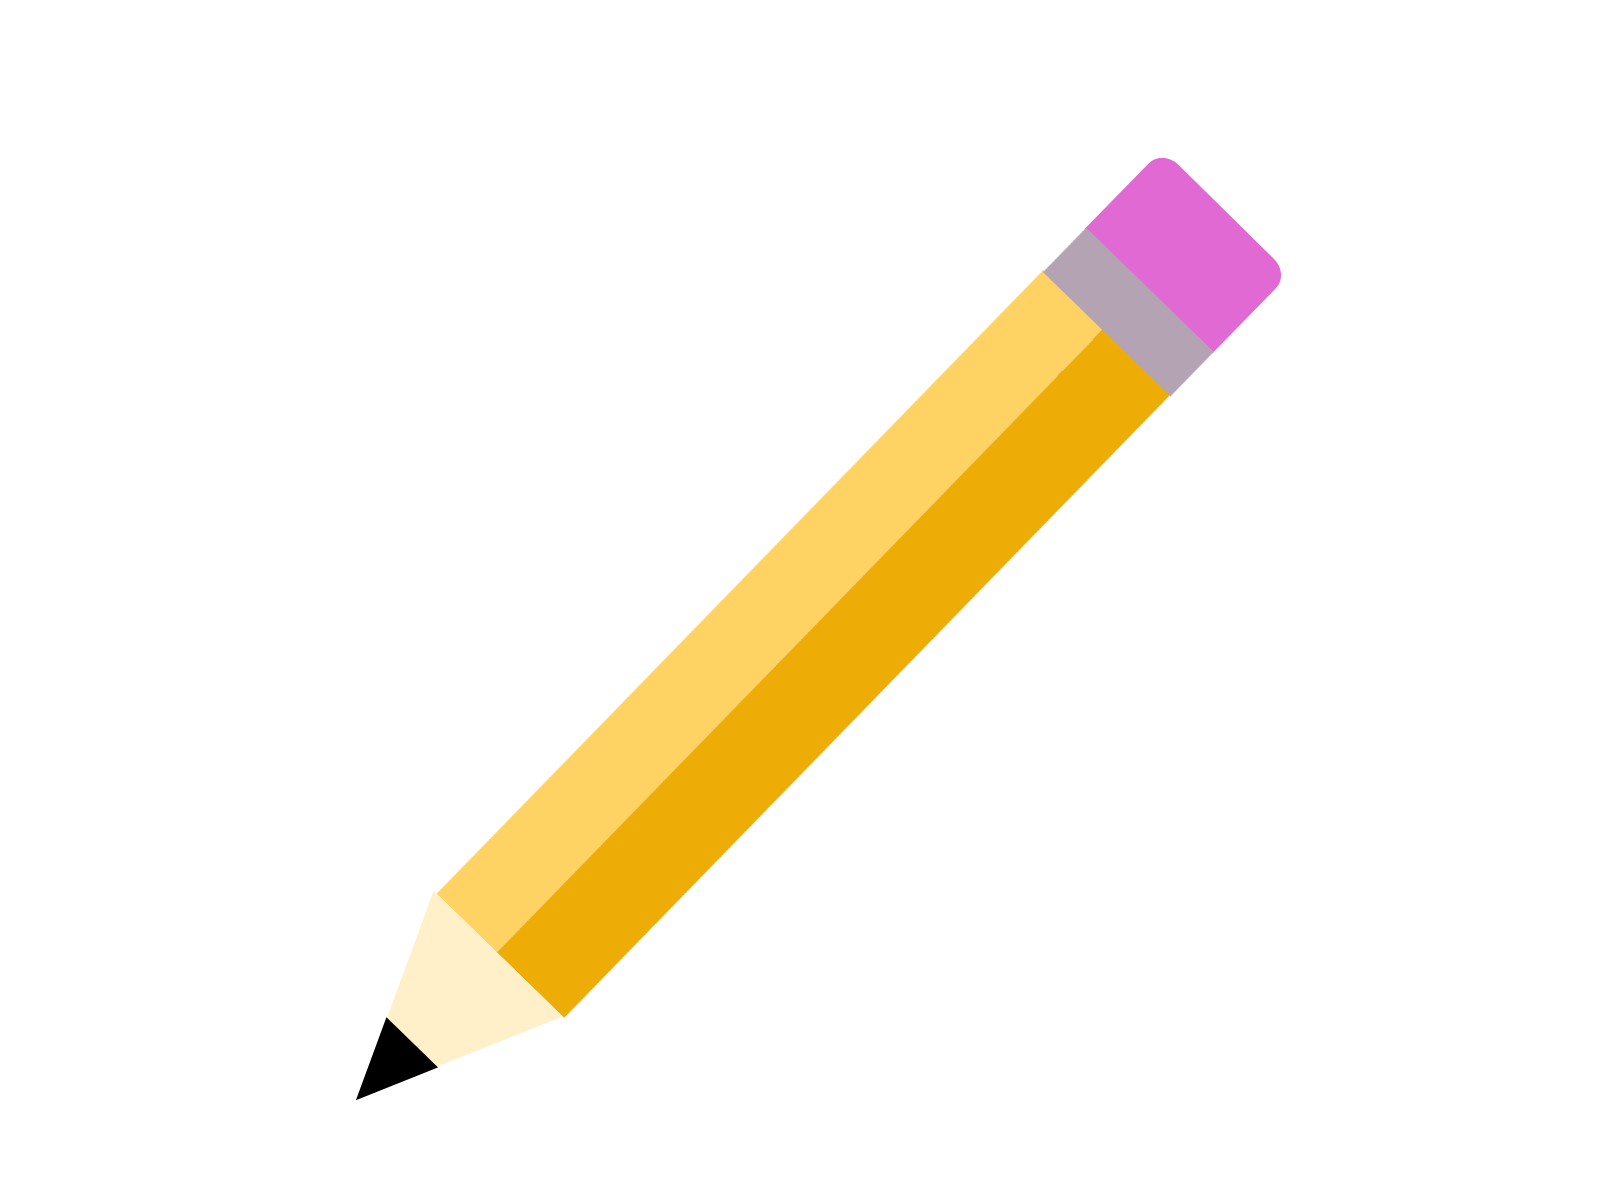 yellow-pencil-png-image-vector - Pencil PNG